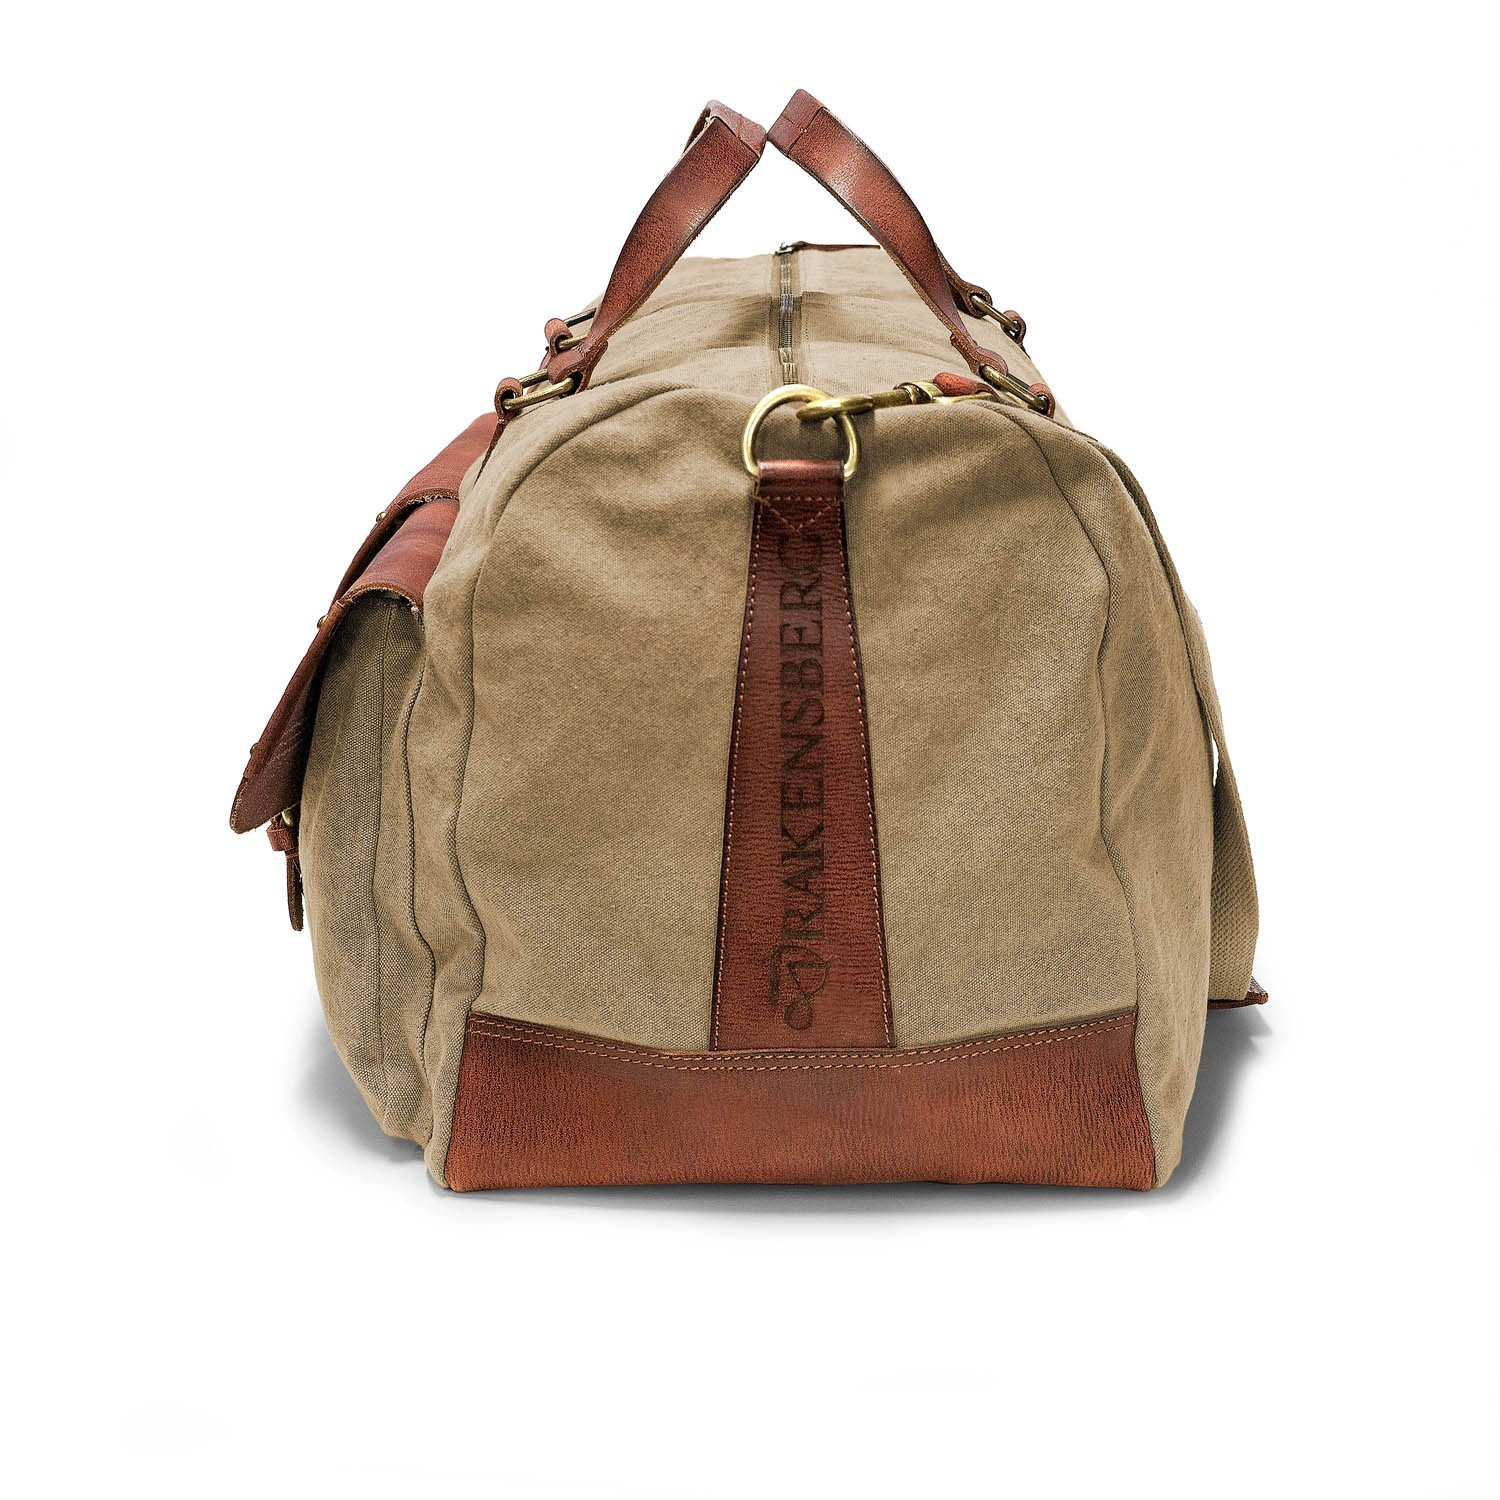 DRAKENSBERG Kimberley Long Weekender, sac de voyage, fourre-tout, artisanat, carry-all, toile, canvas, cuir de buffle, expédition, aventure, vintage, beige, marron